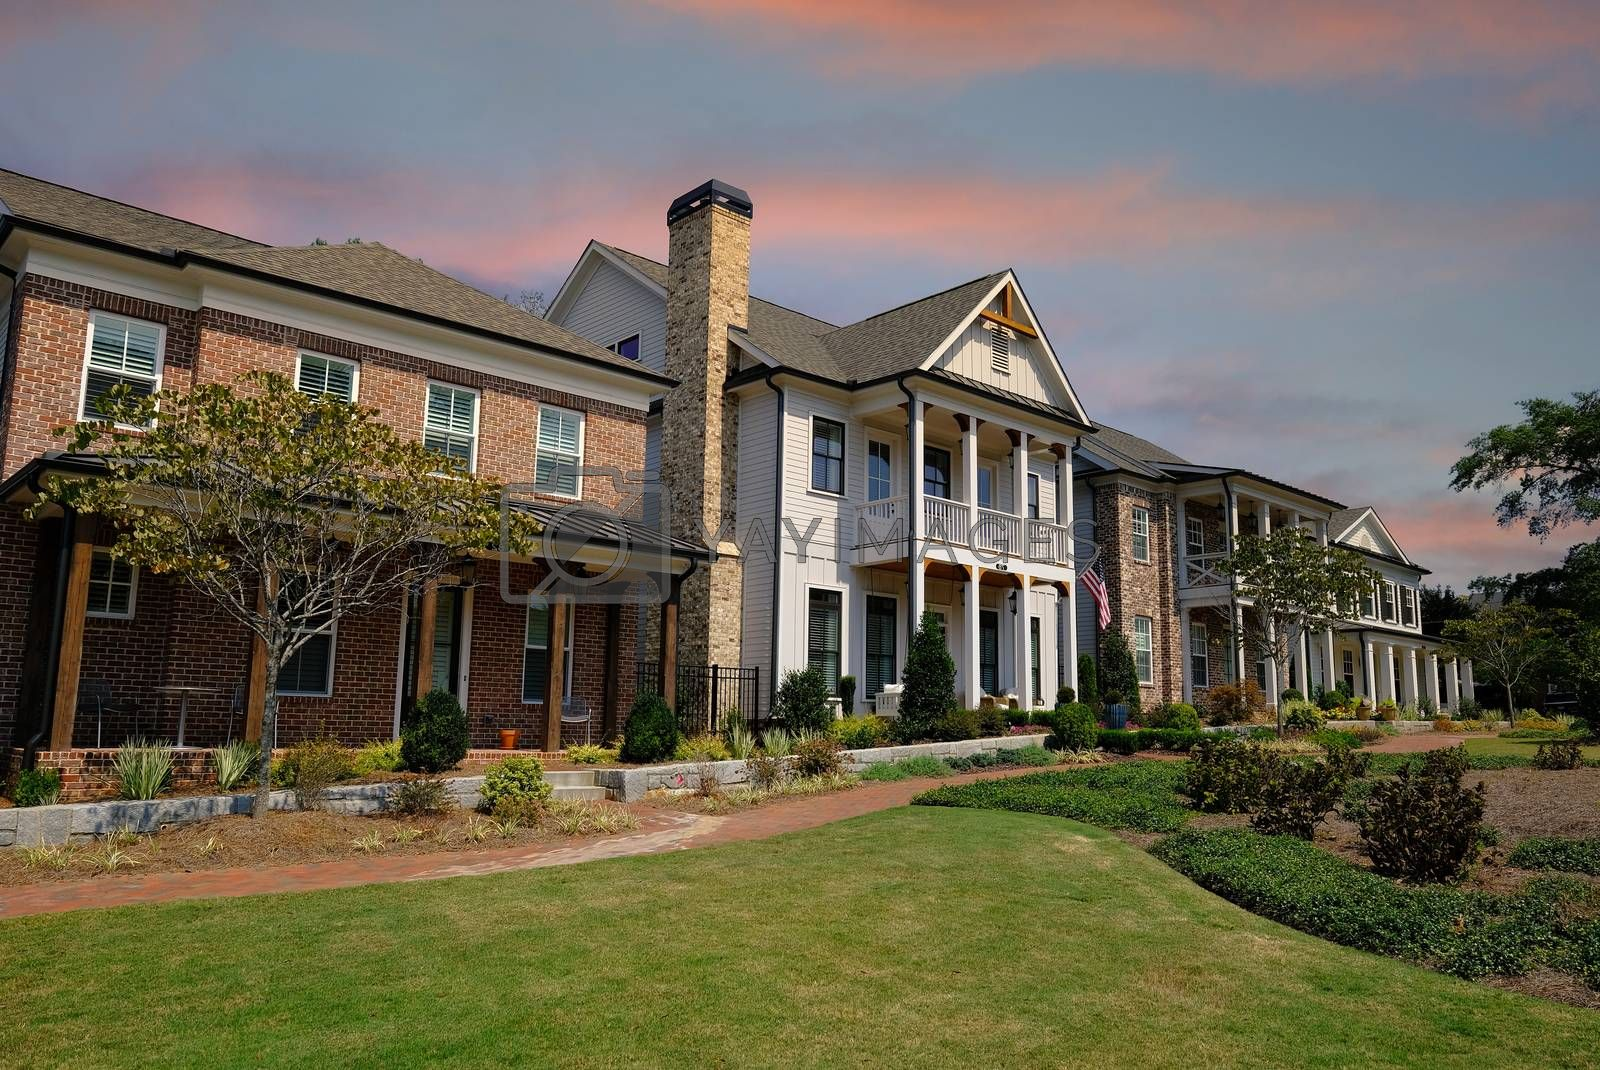 The Alpharetta Historic District contains several historic buildings dating from the late 19th century and older, and includes dining and shopping.